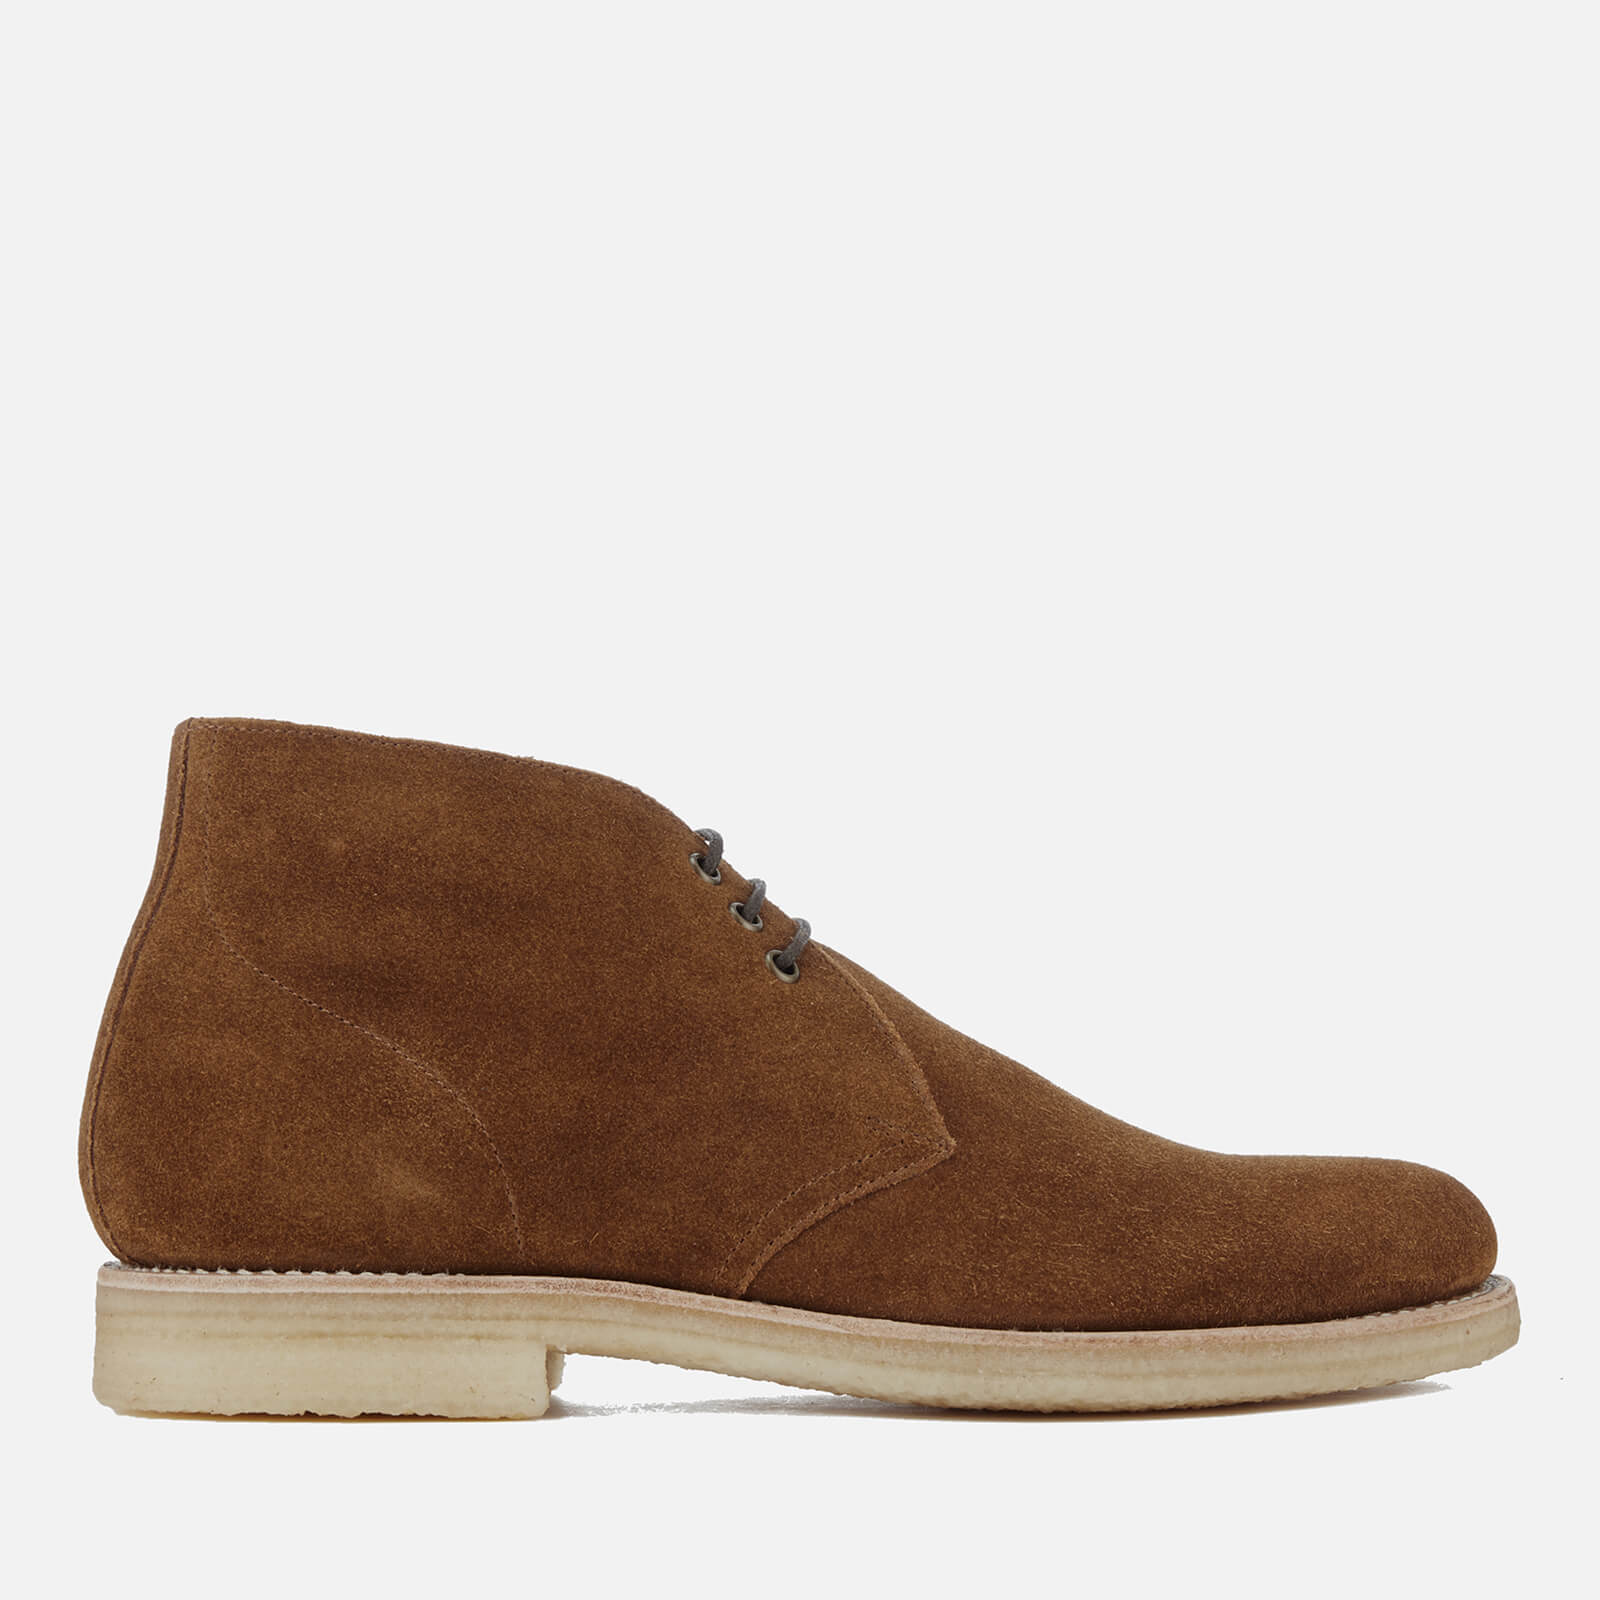 eca5fbbb93d729 Grenson Men s Oscar Suede Chukka Boots - Snuff - Free UK Delivery over £50